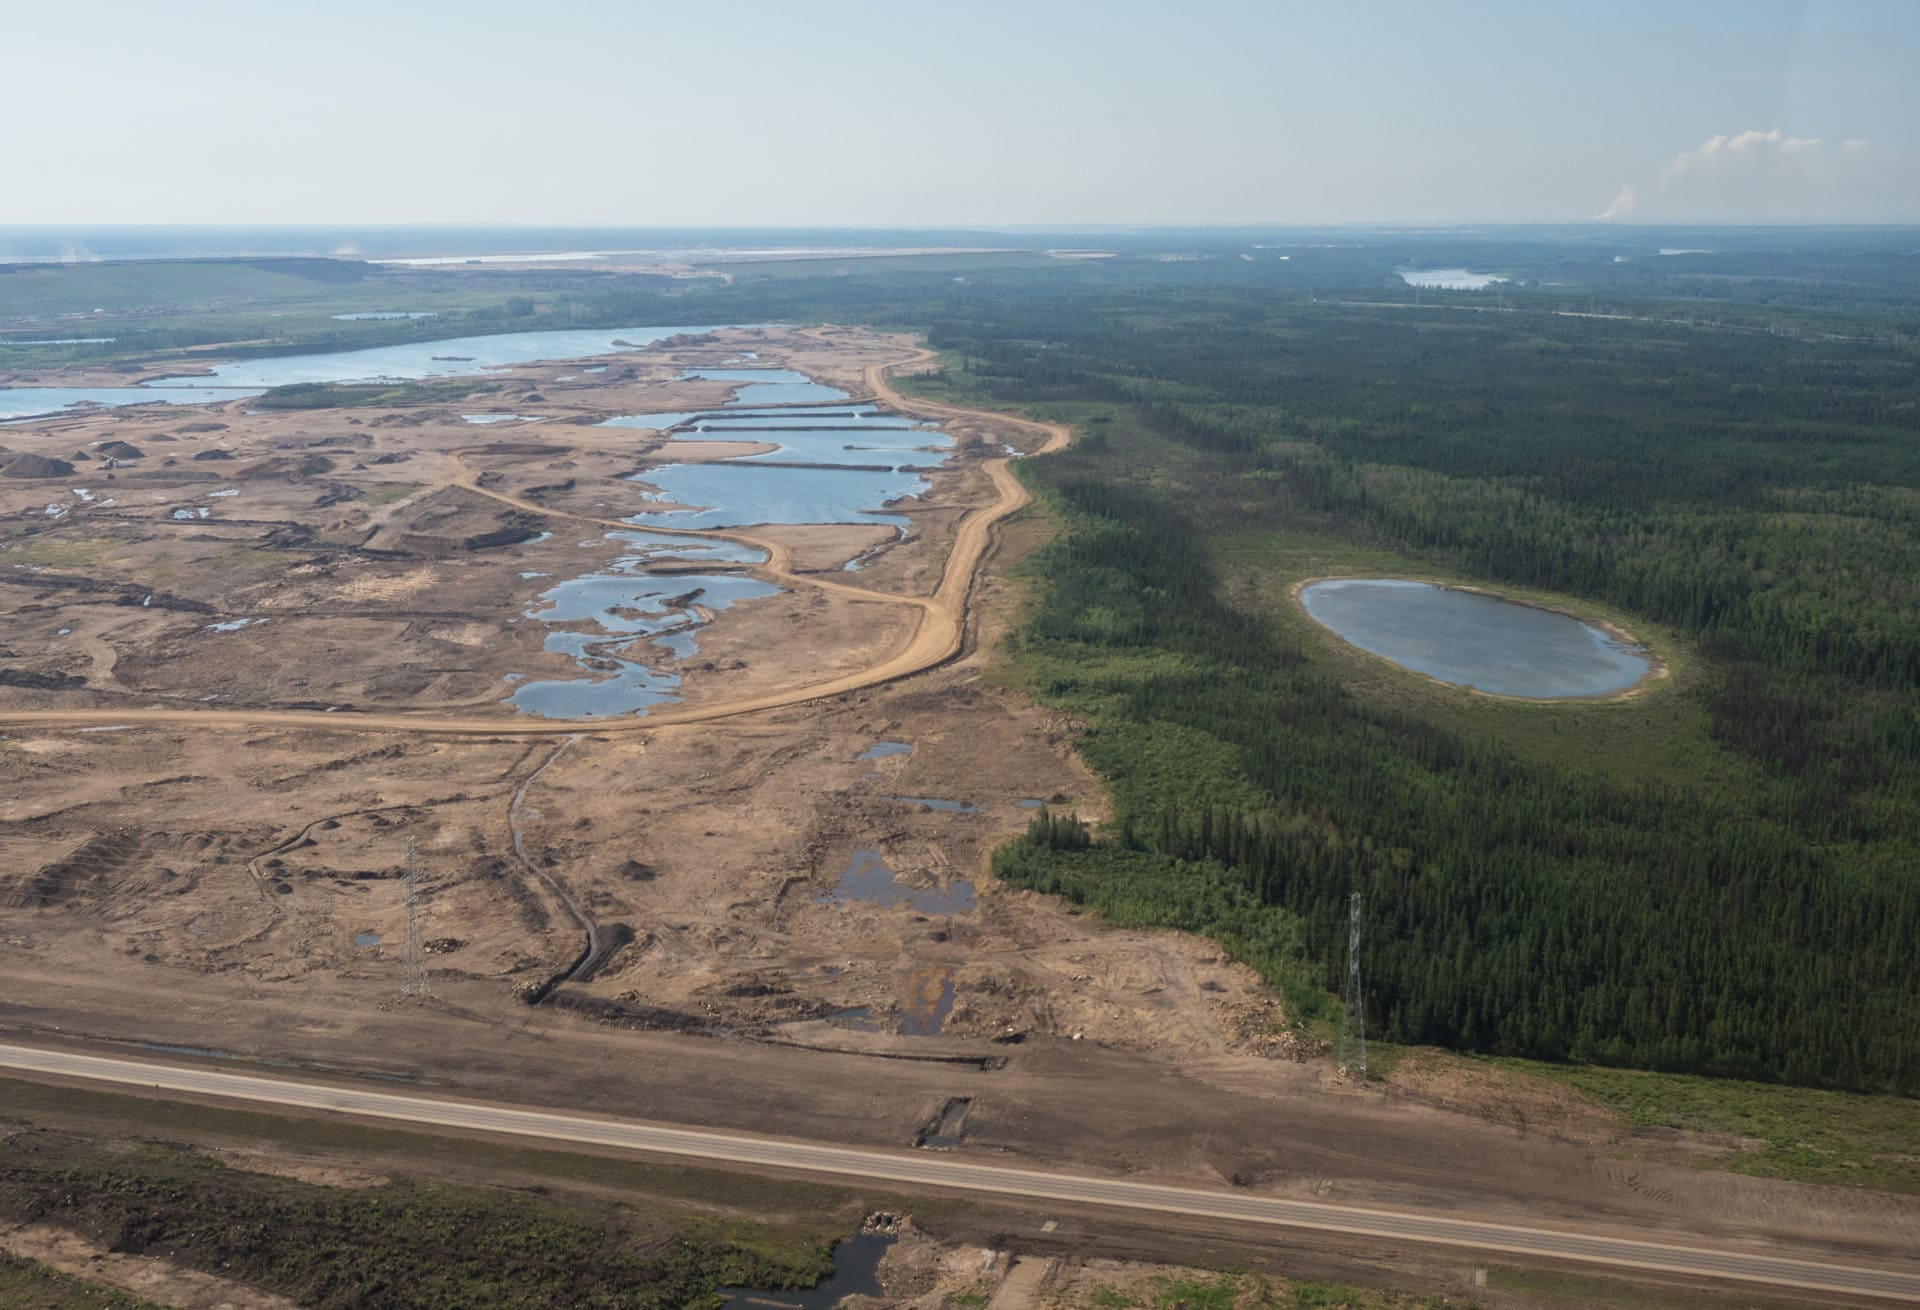 Alberta's oilsands North of Fort McMurray.